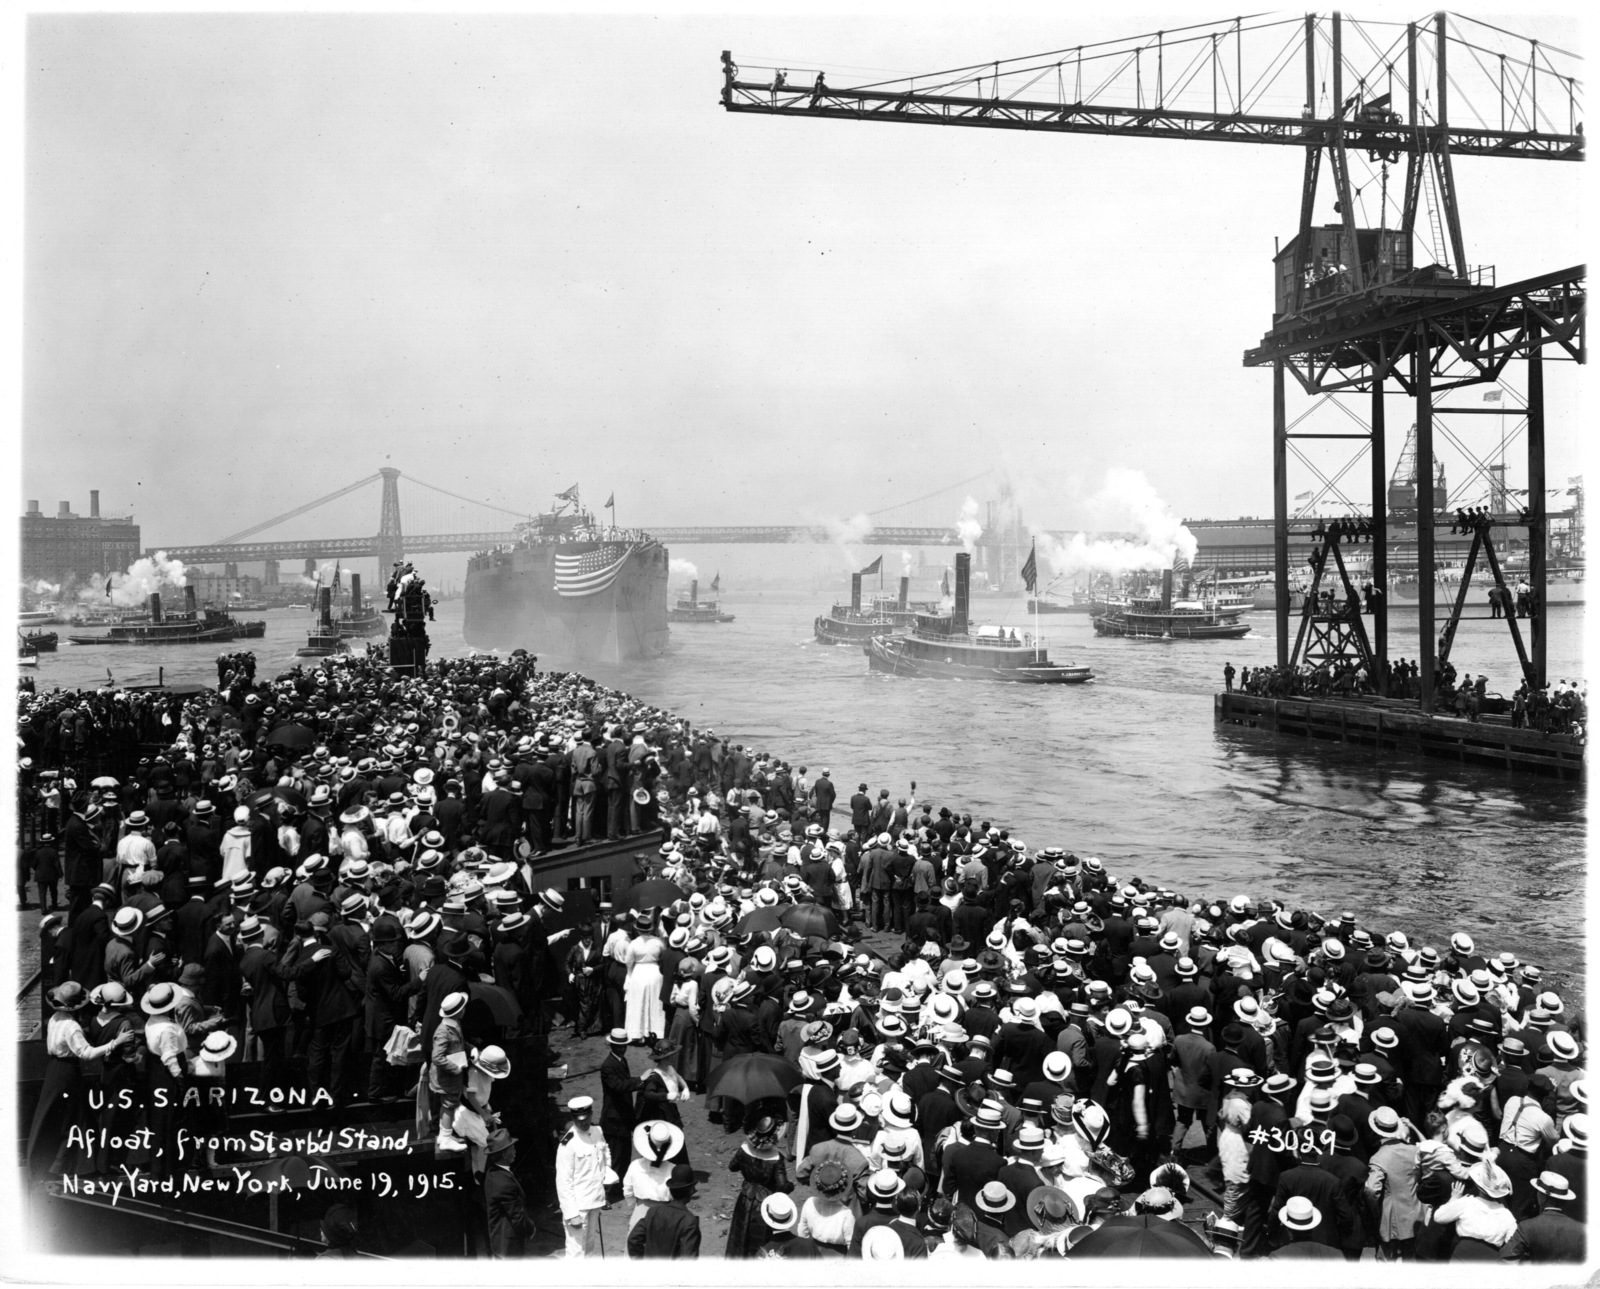 USS Arizona, Afloat from Starboard Stand, Navy Yard, New York